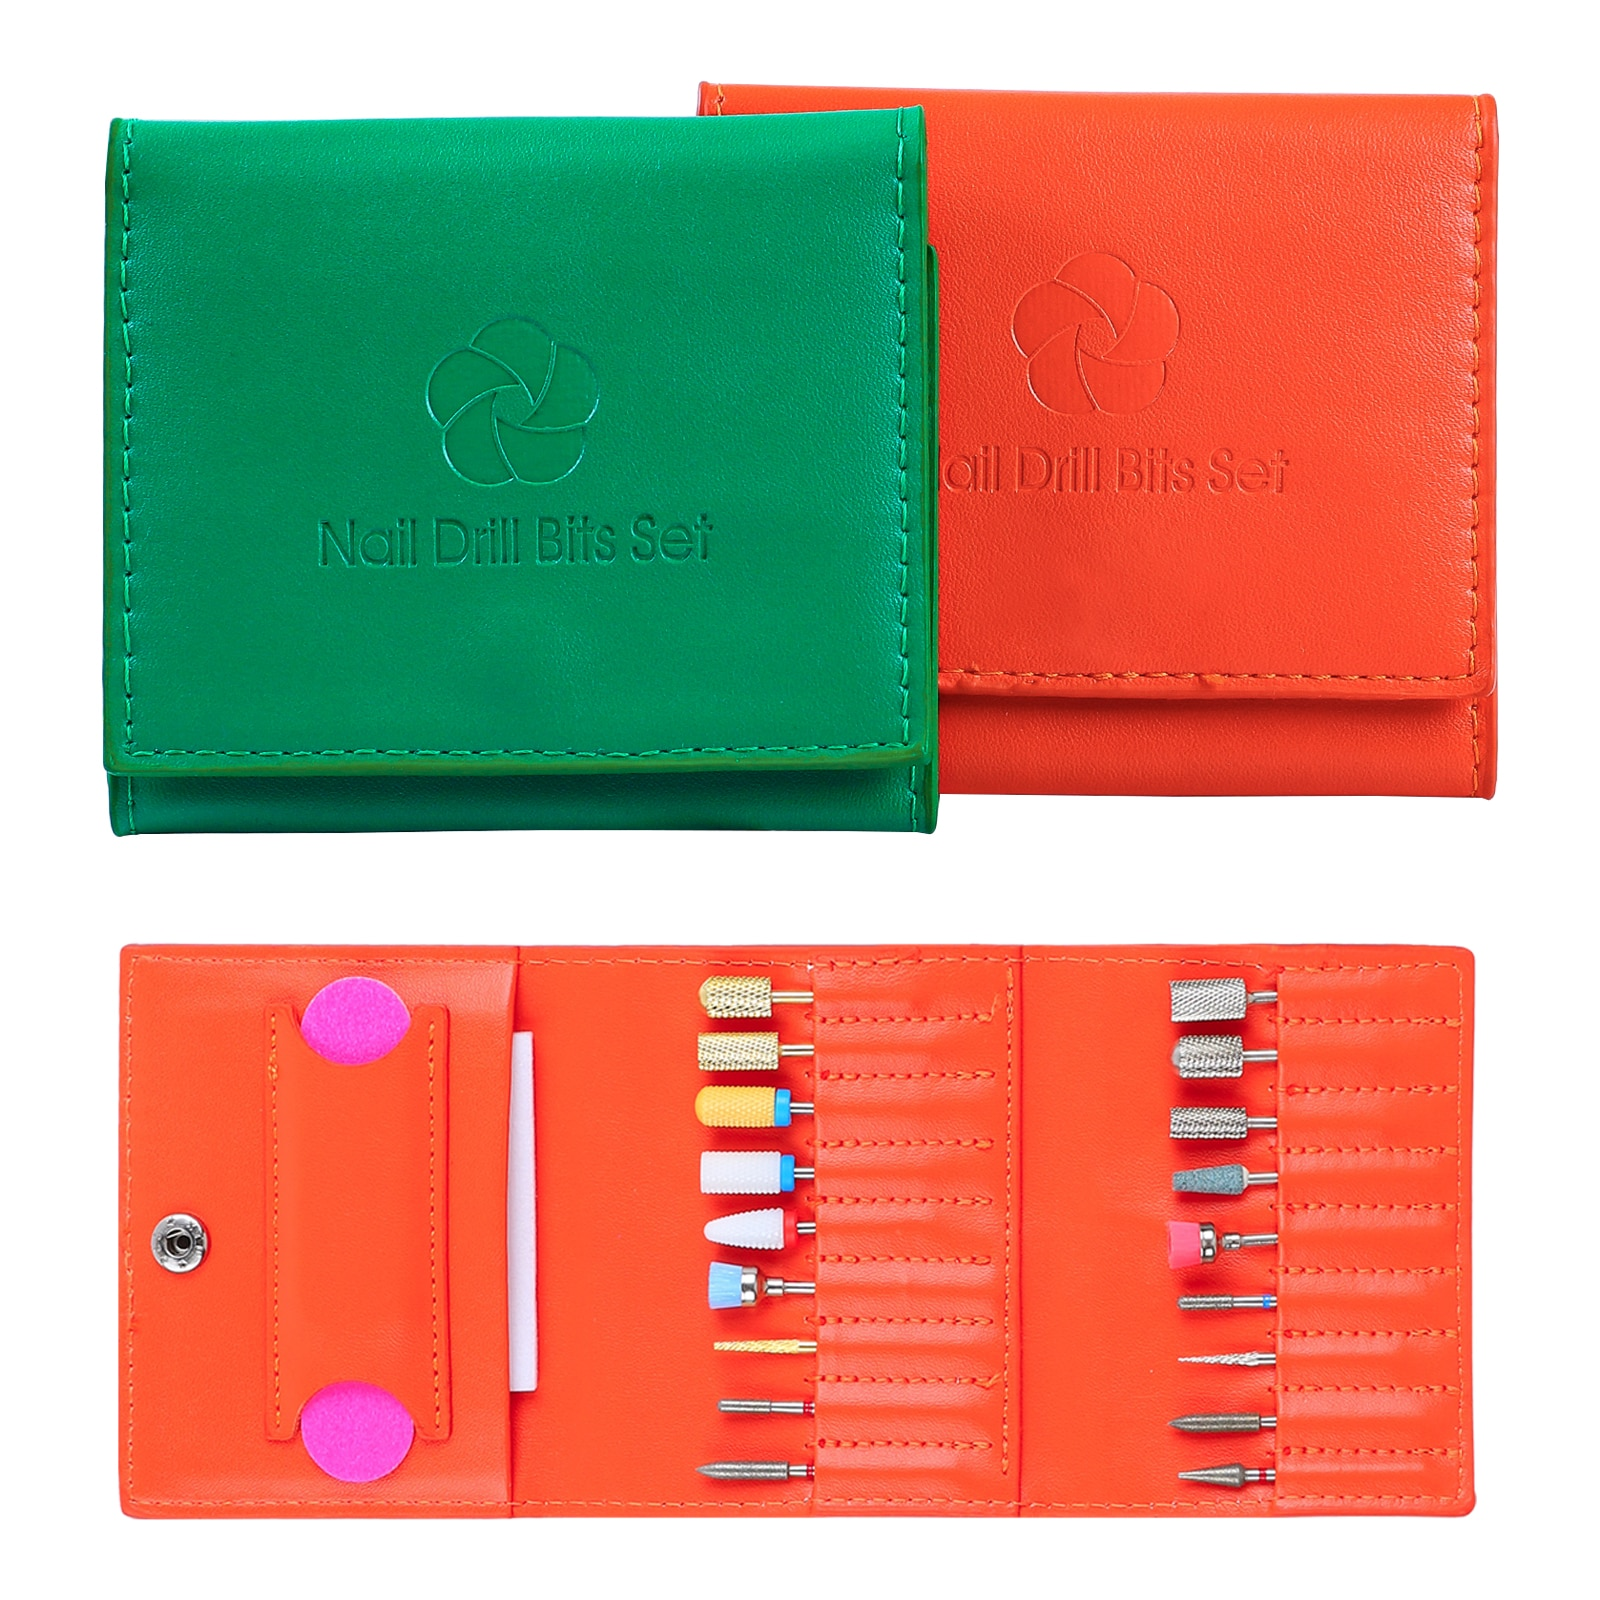 18 Holes Nail Art Drill Bits Storage Bag Polishing Head Kits Display Portable Electric Milling Cutter Grinding Head Save Package